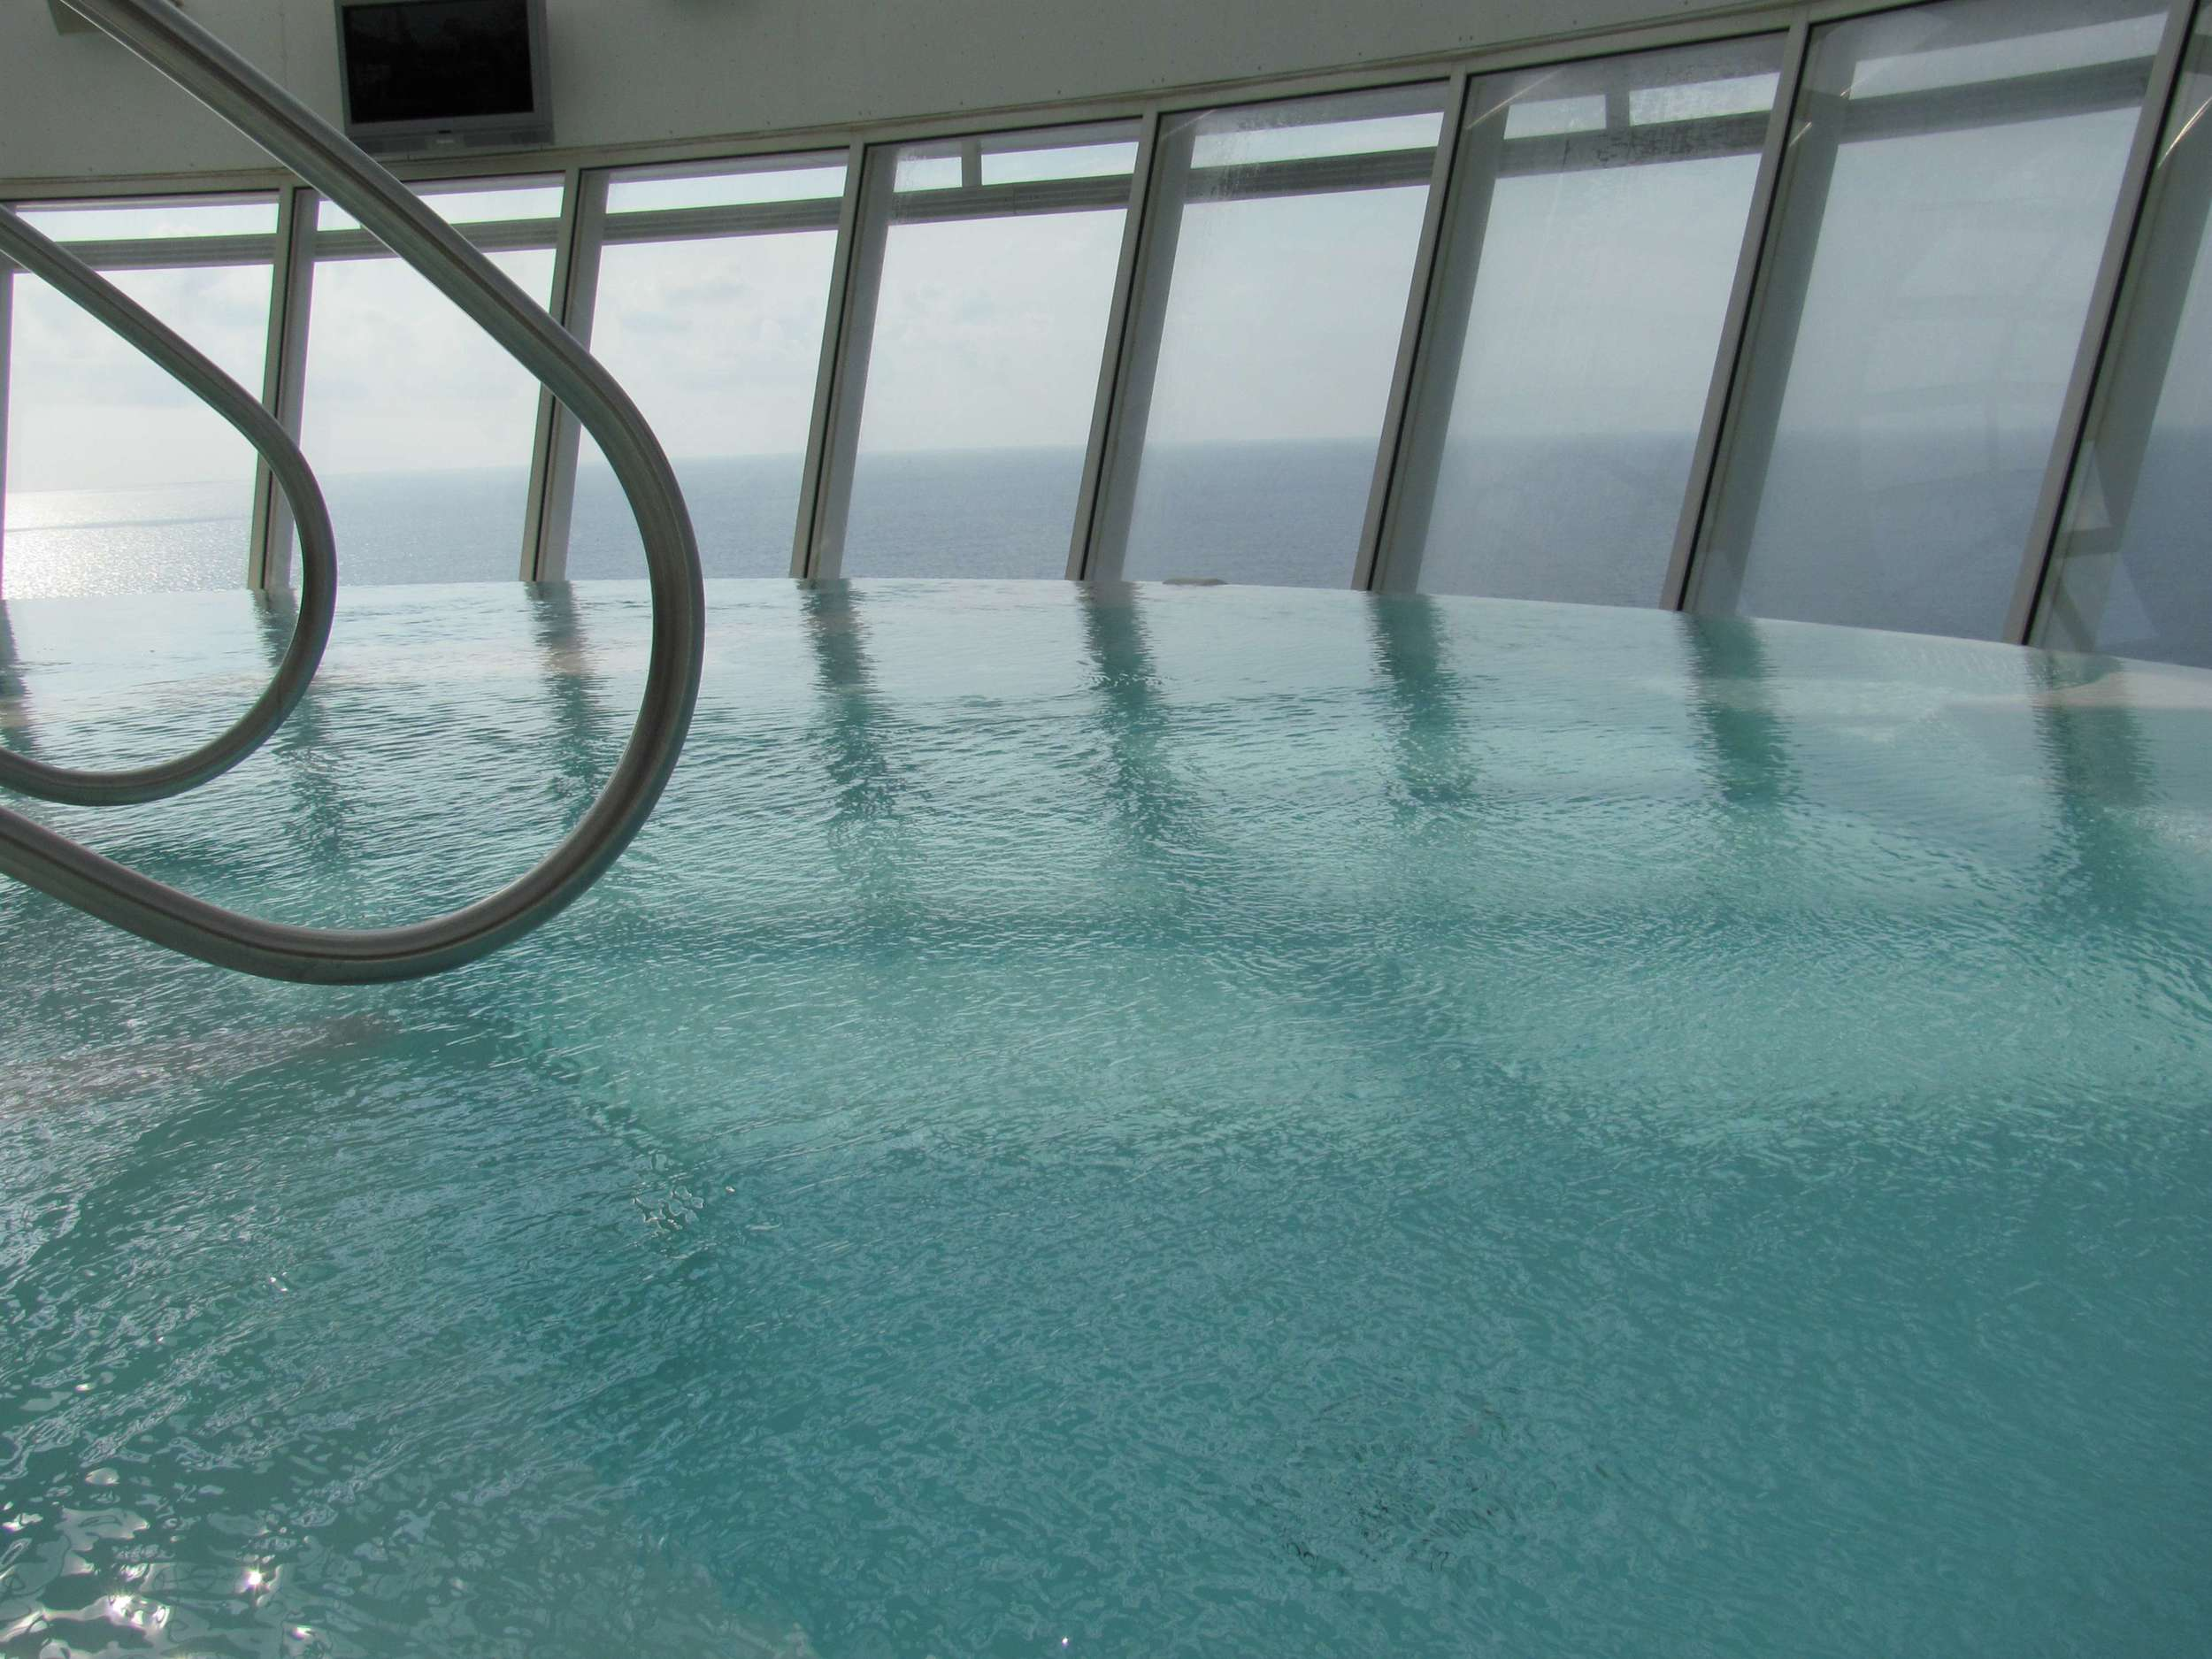 One of the infinity pools